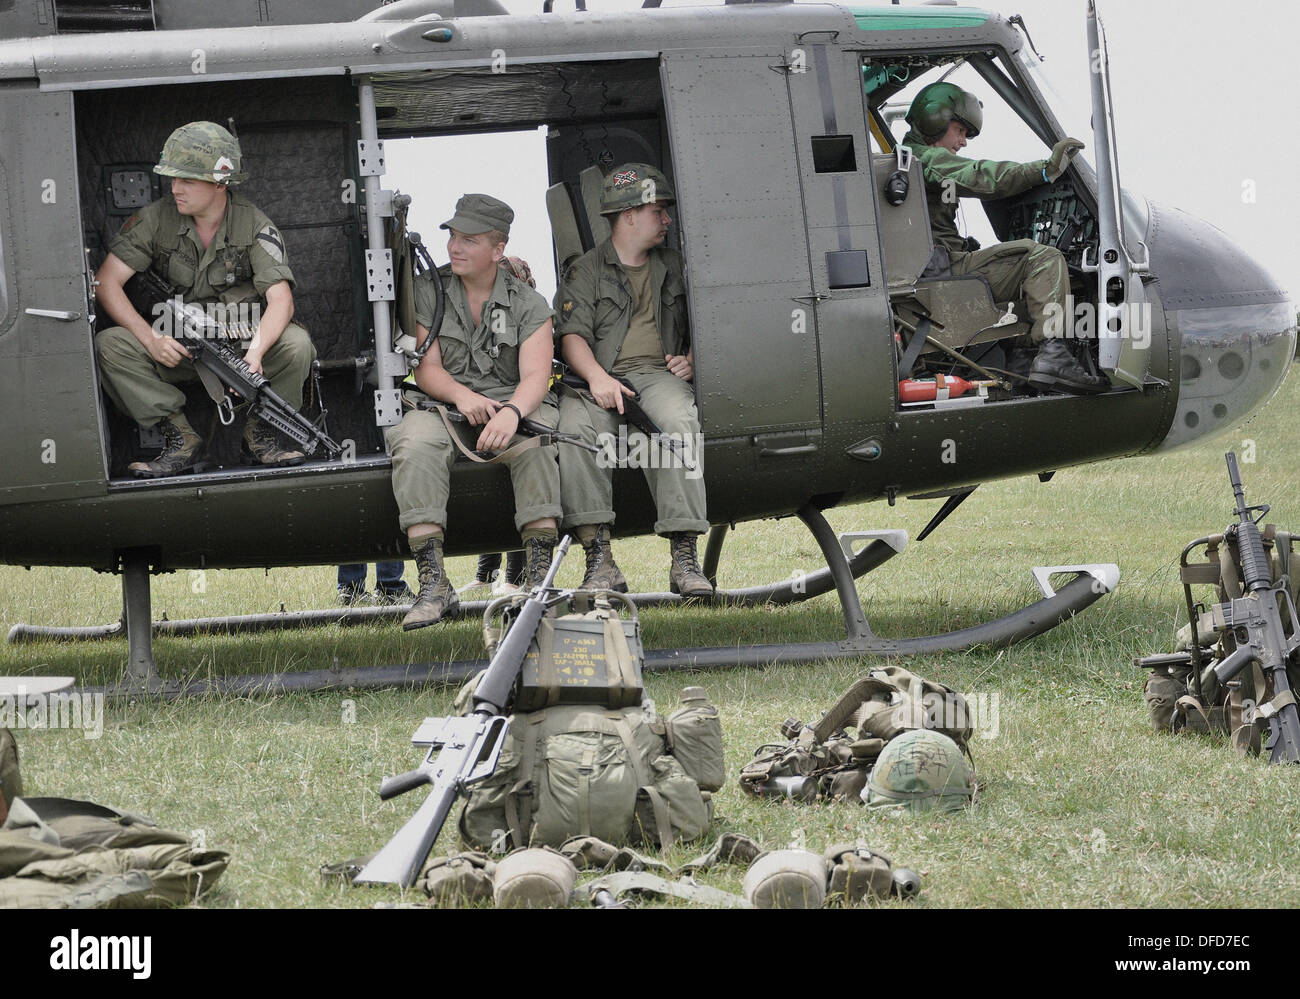 Huey Helicopter For Sale >> Bell UH-1 'Huey' with re-enactors to represent Vietnam War scenario Stock Photo: 61142212 - Alamy